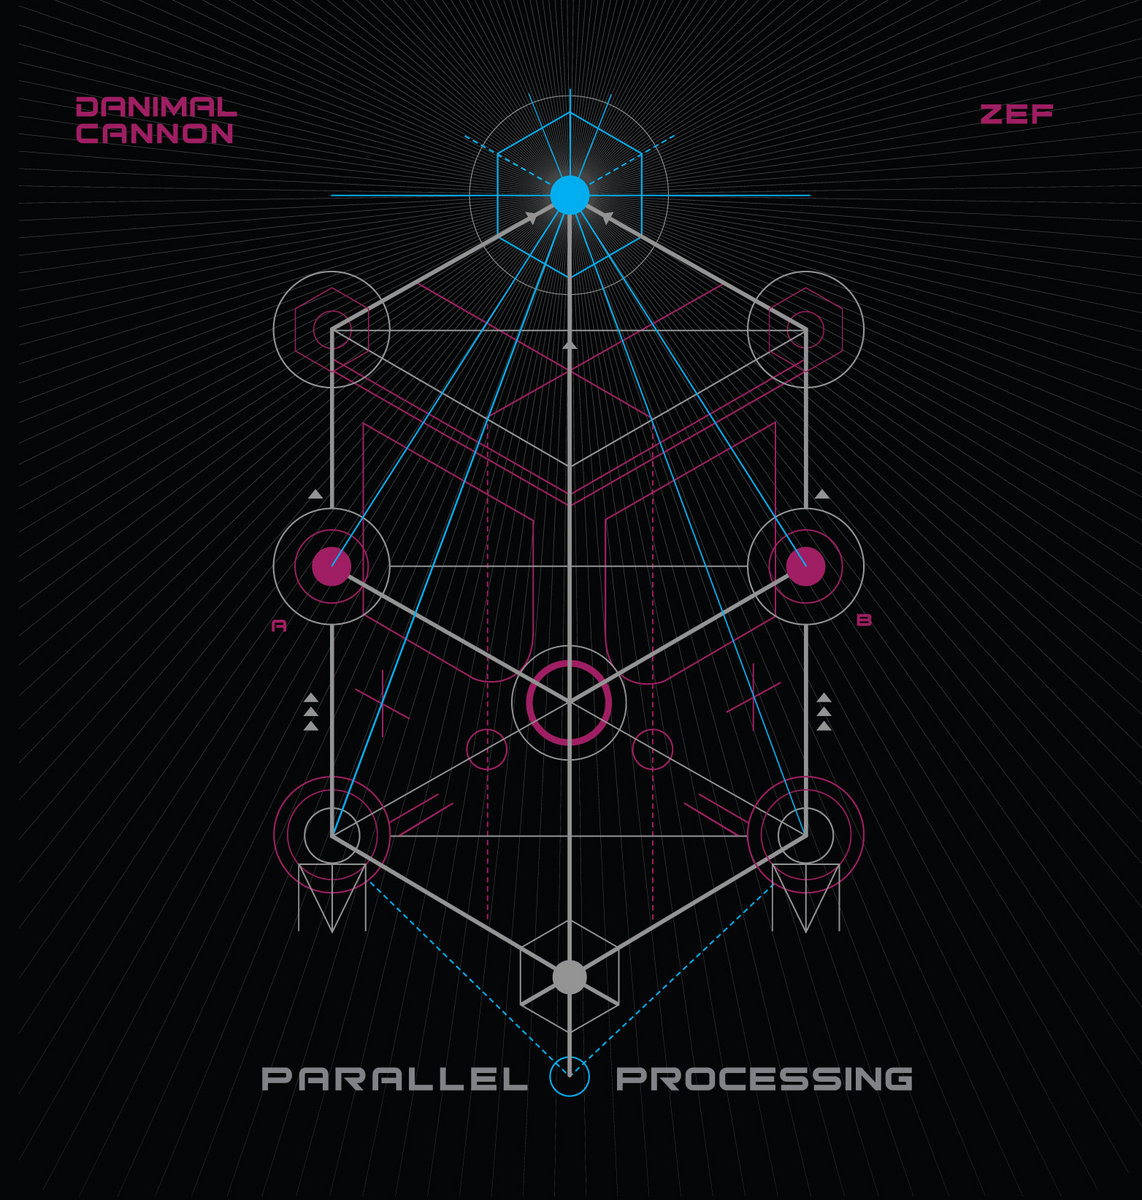 Danimal Cannon + Zef - Parallel Processing